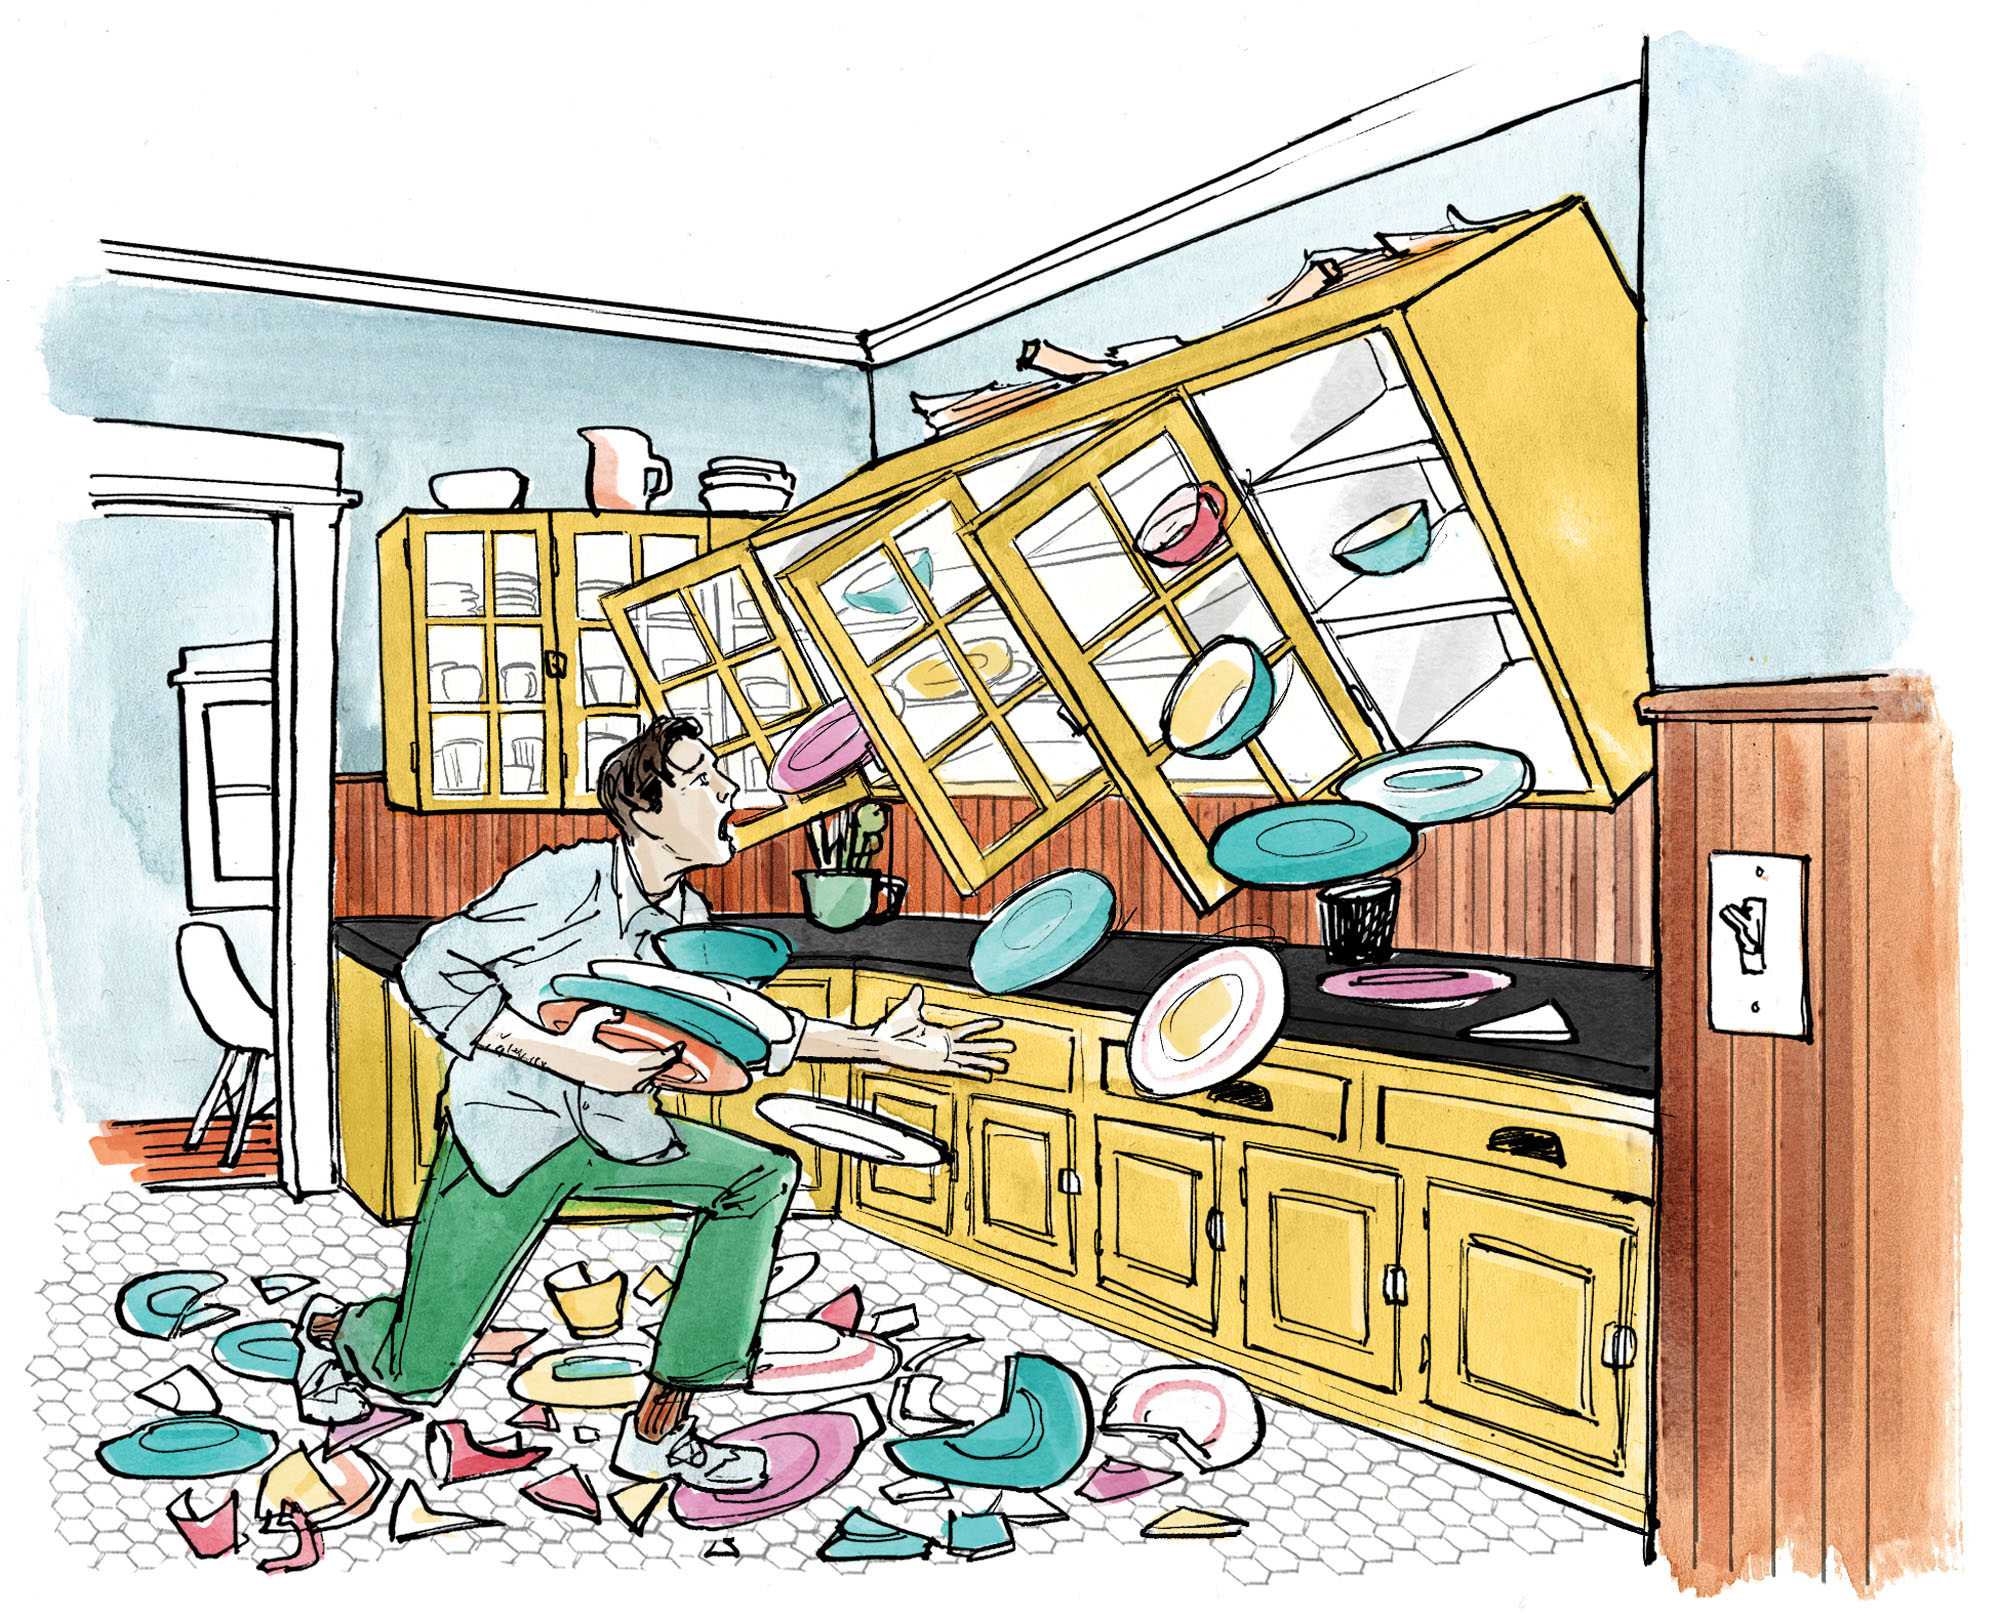 """""""We came home to find upper cabinets    at full tilt, with dishes smashing to smithereens onto the floor!"""" –Jim Sterling"""